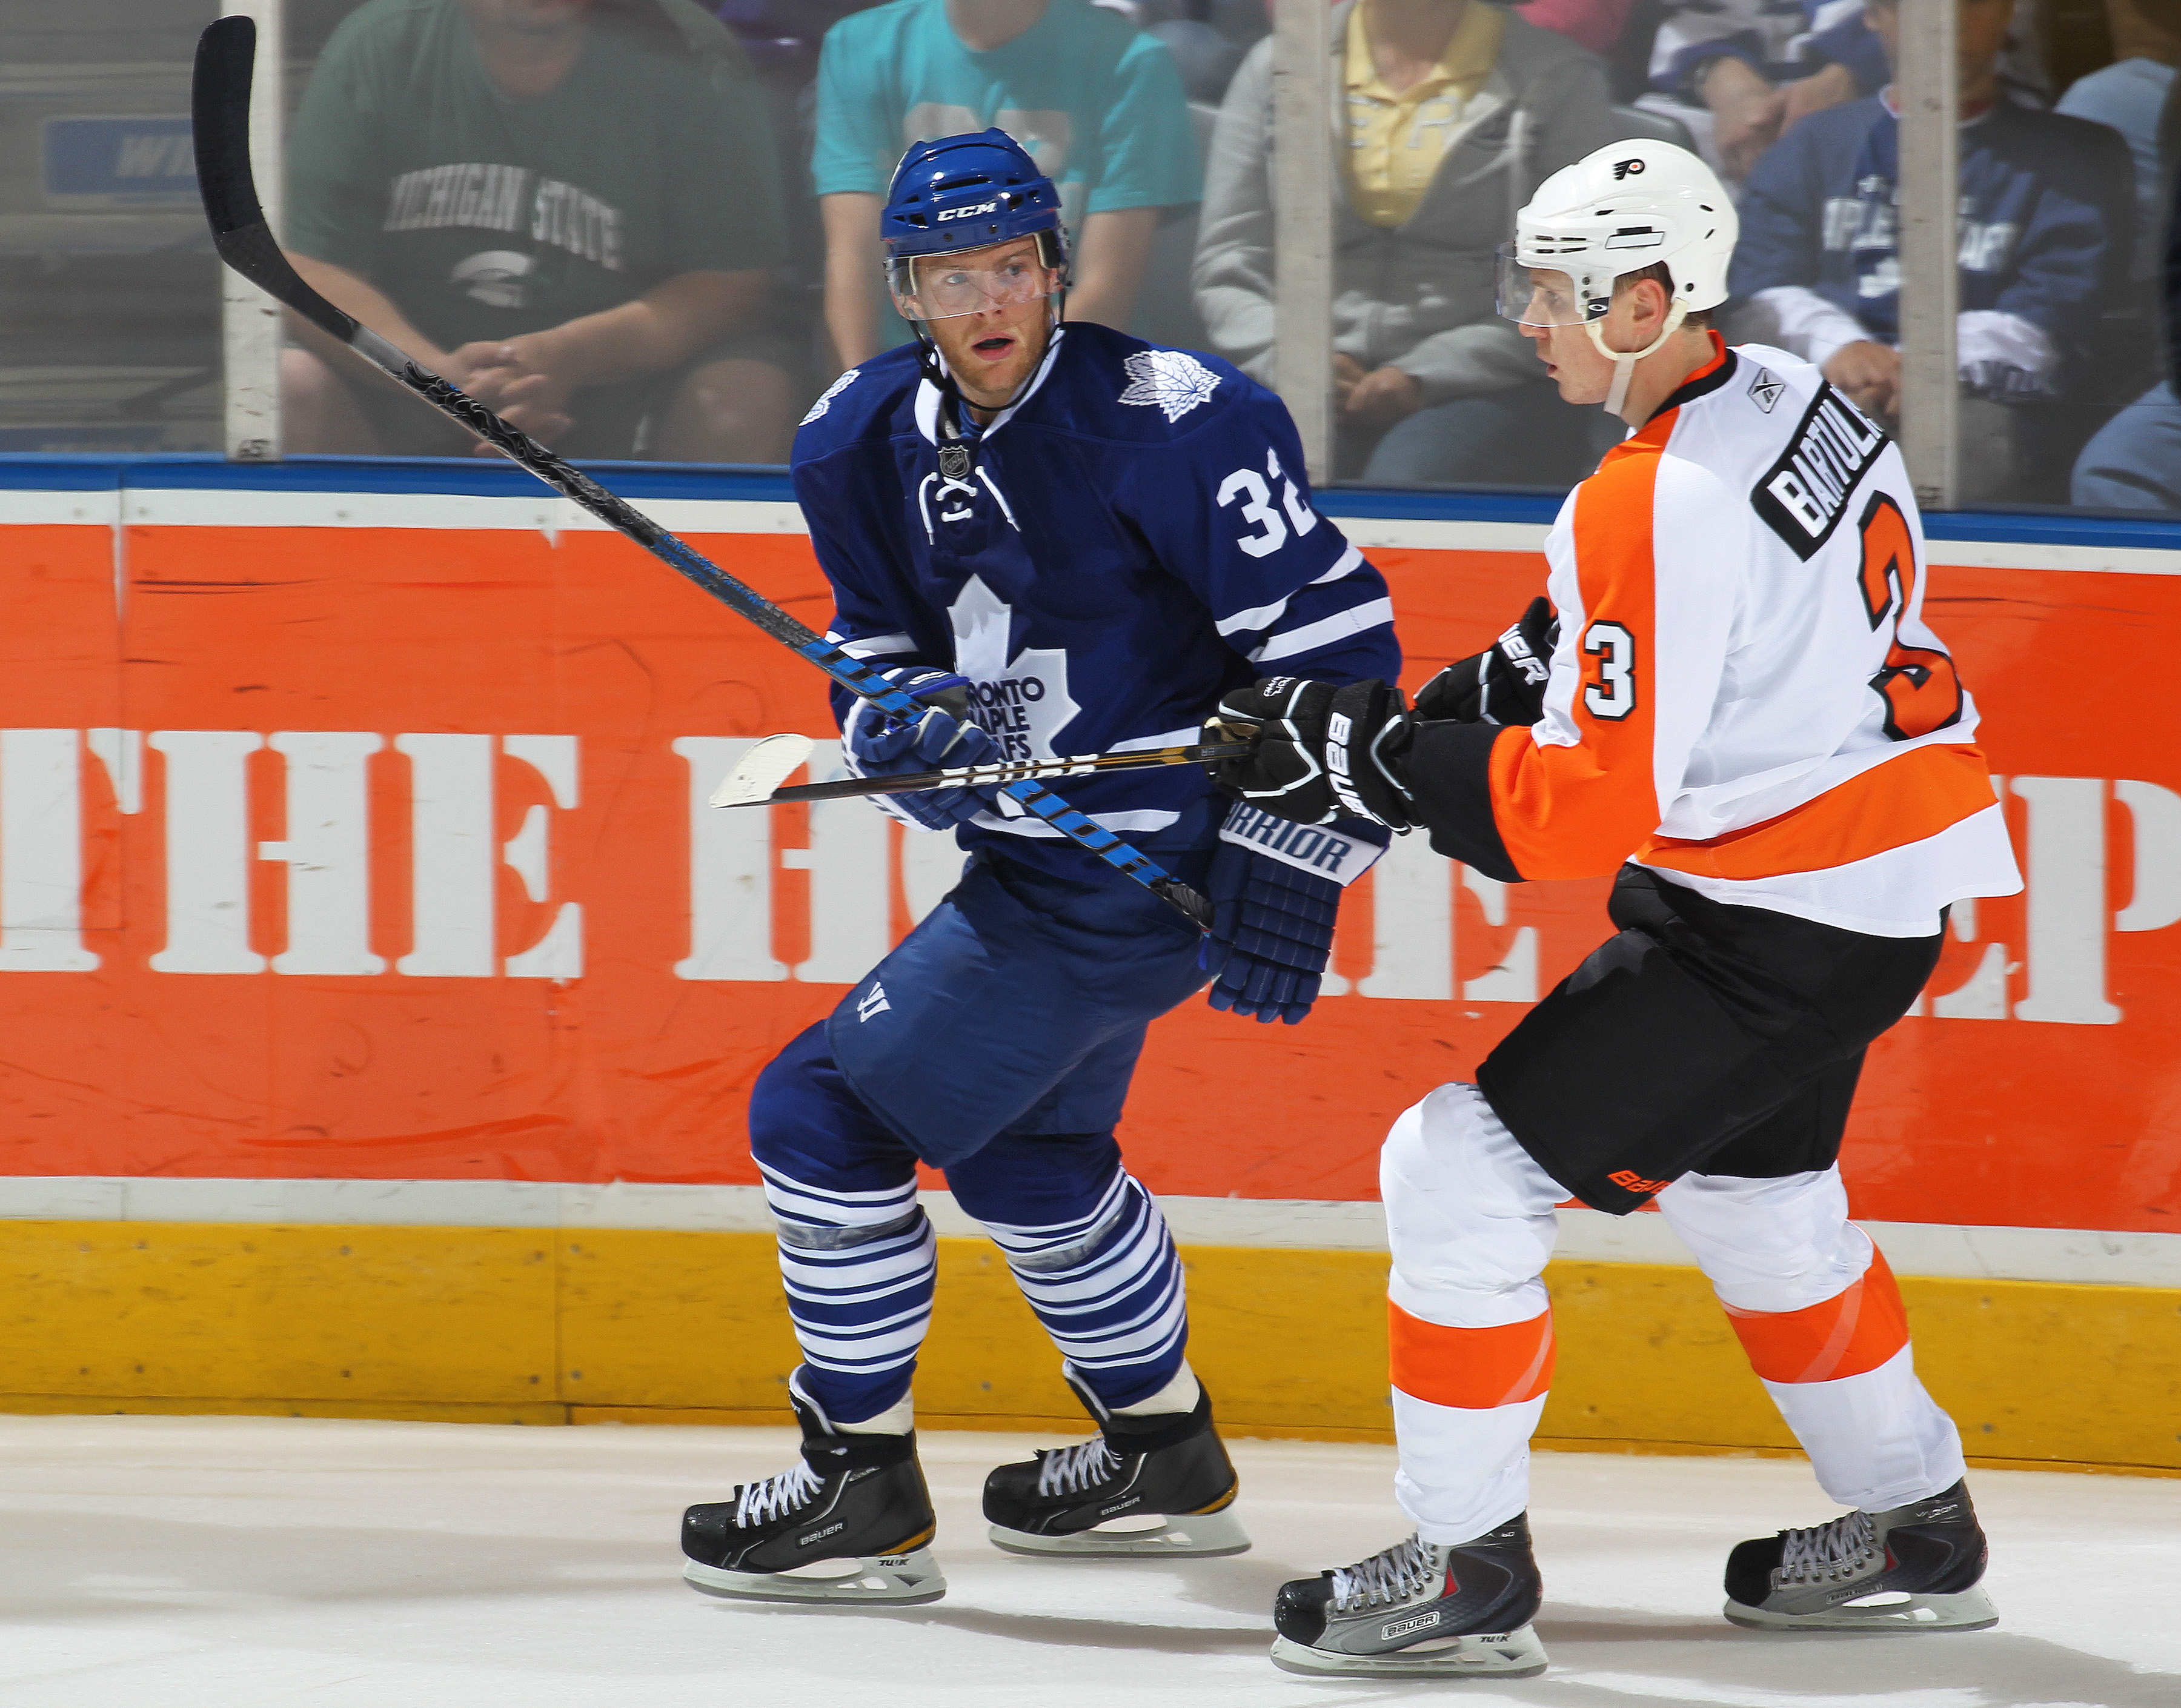 LONDON,ON - SEPTEMBER 23: Kris Versteeg #32 of the Toronto Maple Leafs is held in check by Oskars Bartulis #3 of the Philadelphia Flyers in a pre-season game on September 23,2010 at the John Labatt Centre in London, Ontario. The Leafs defeated the Flyers